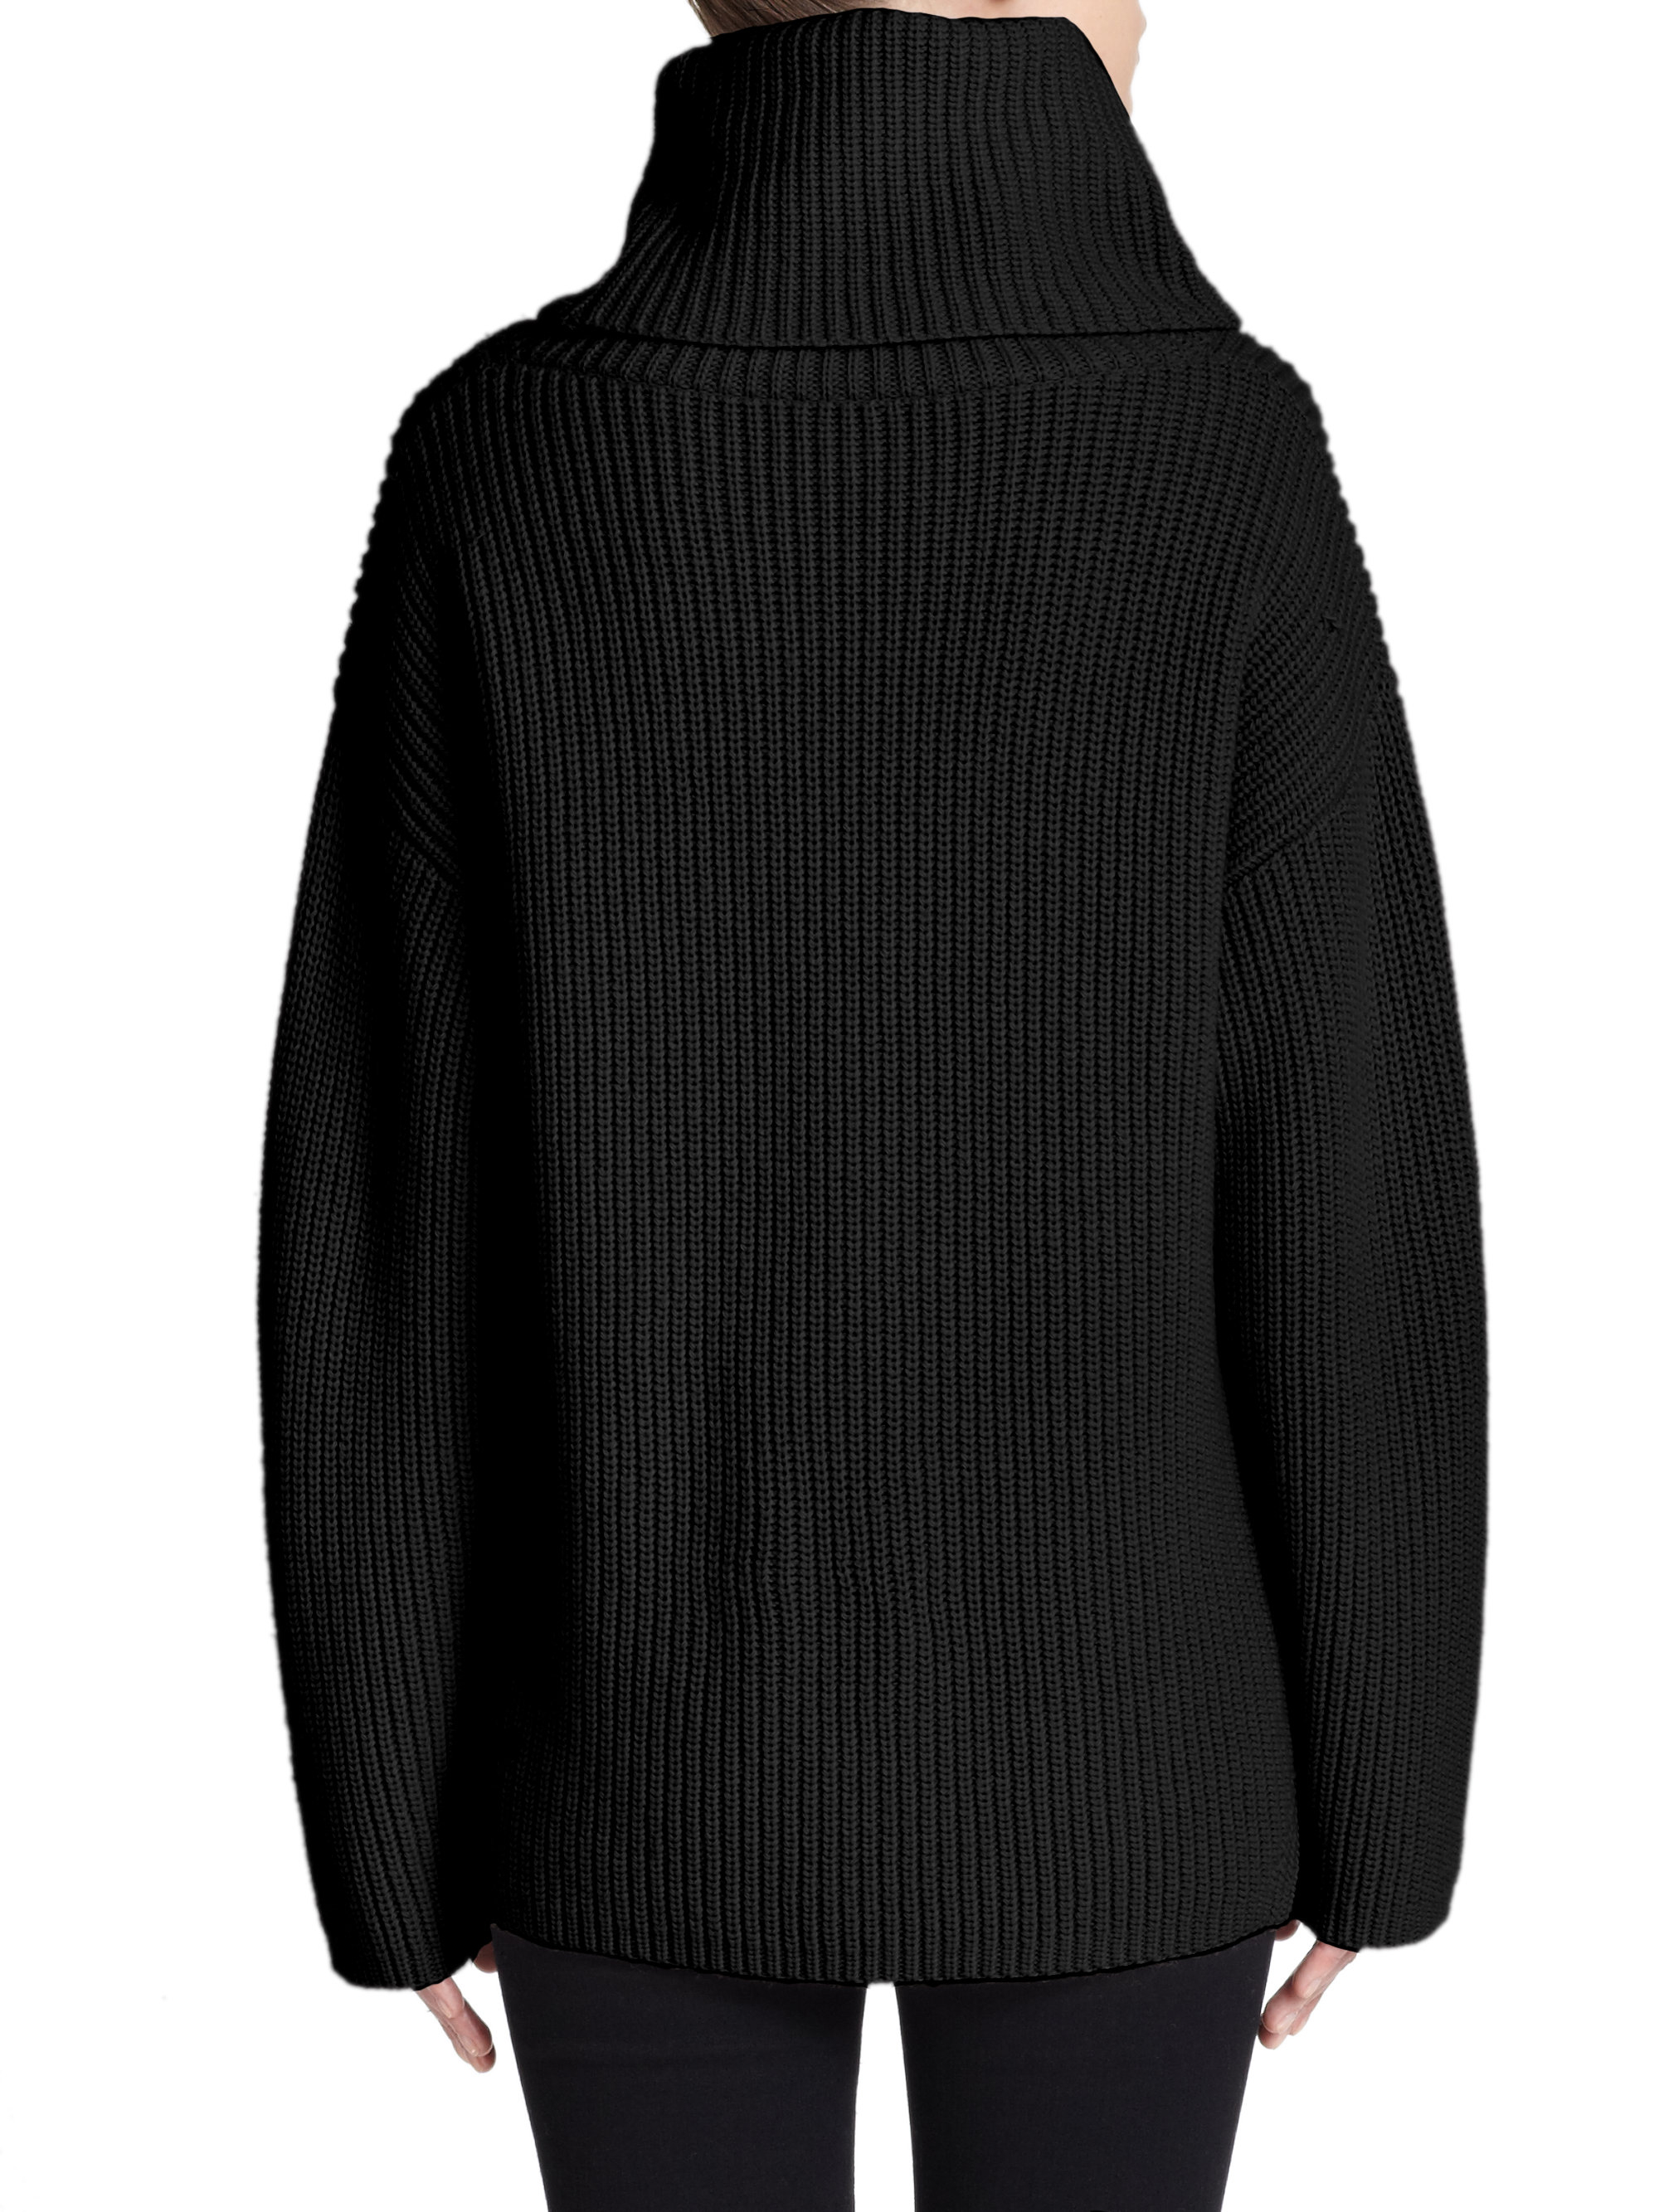 Theory Naven Oversized Ribbed Wool Turtleneck Sweater in Black | Lyst